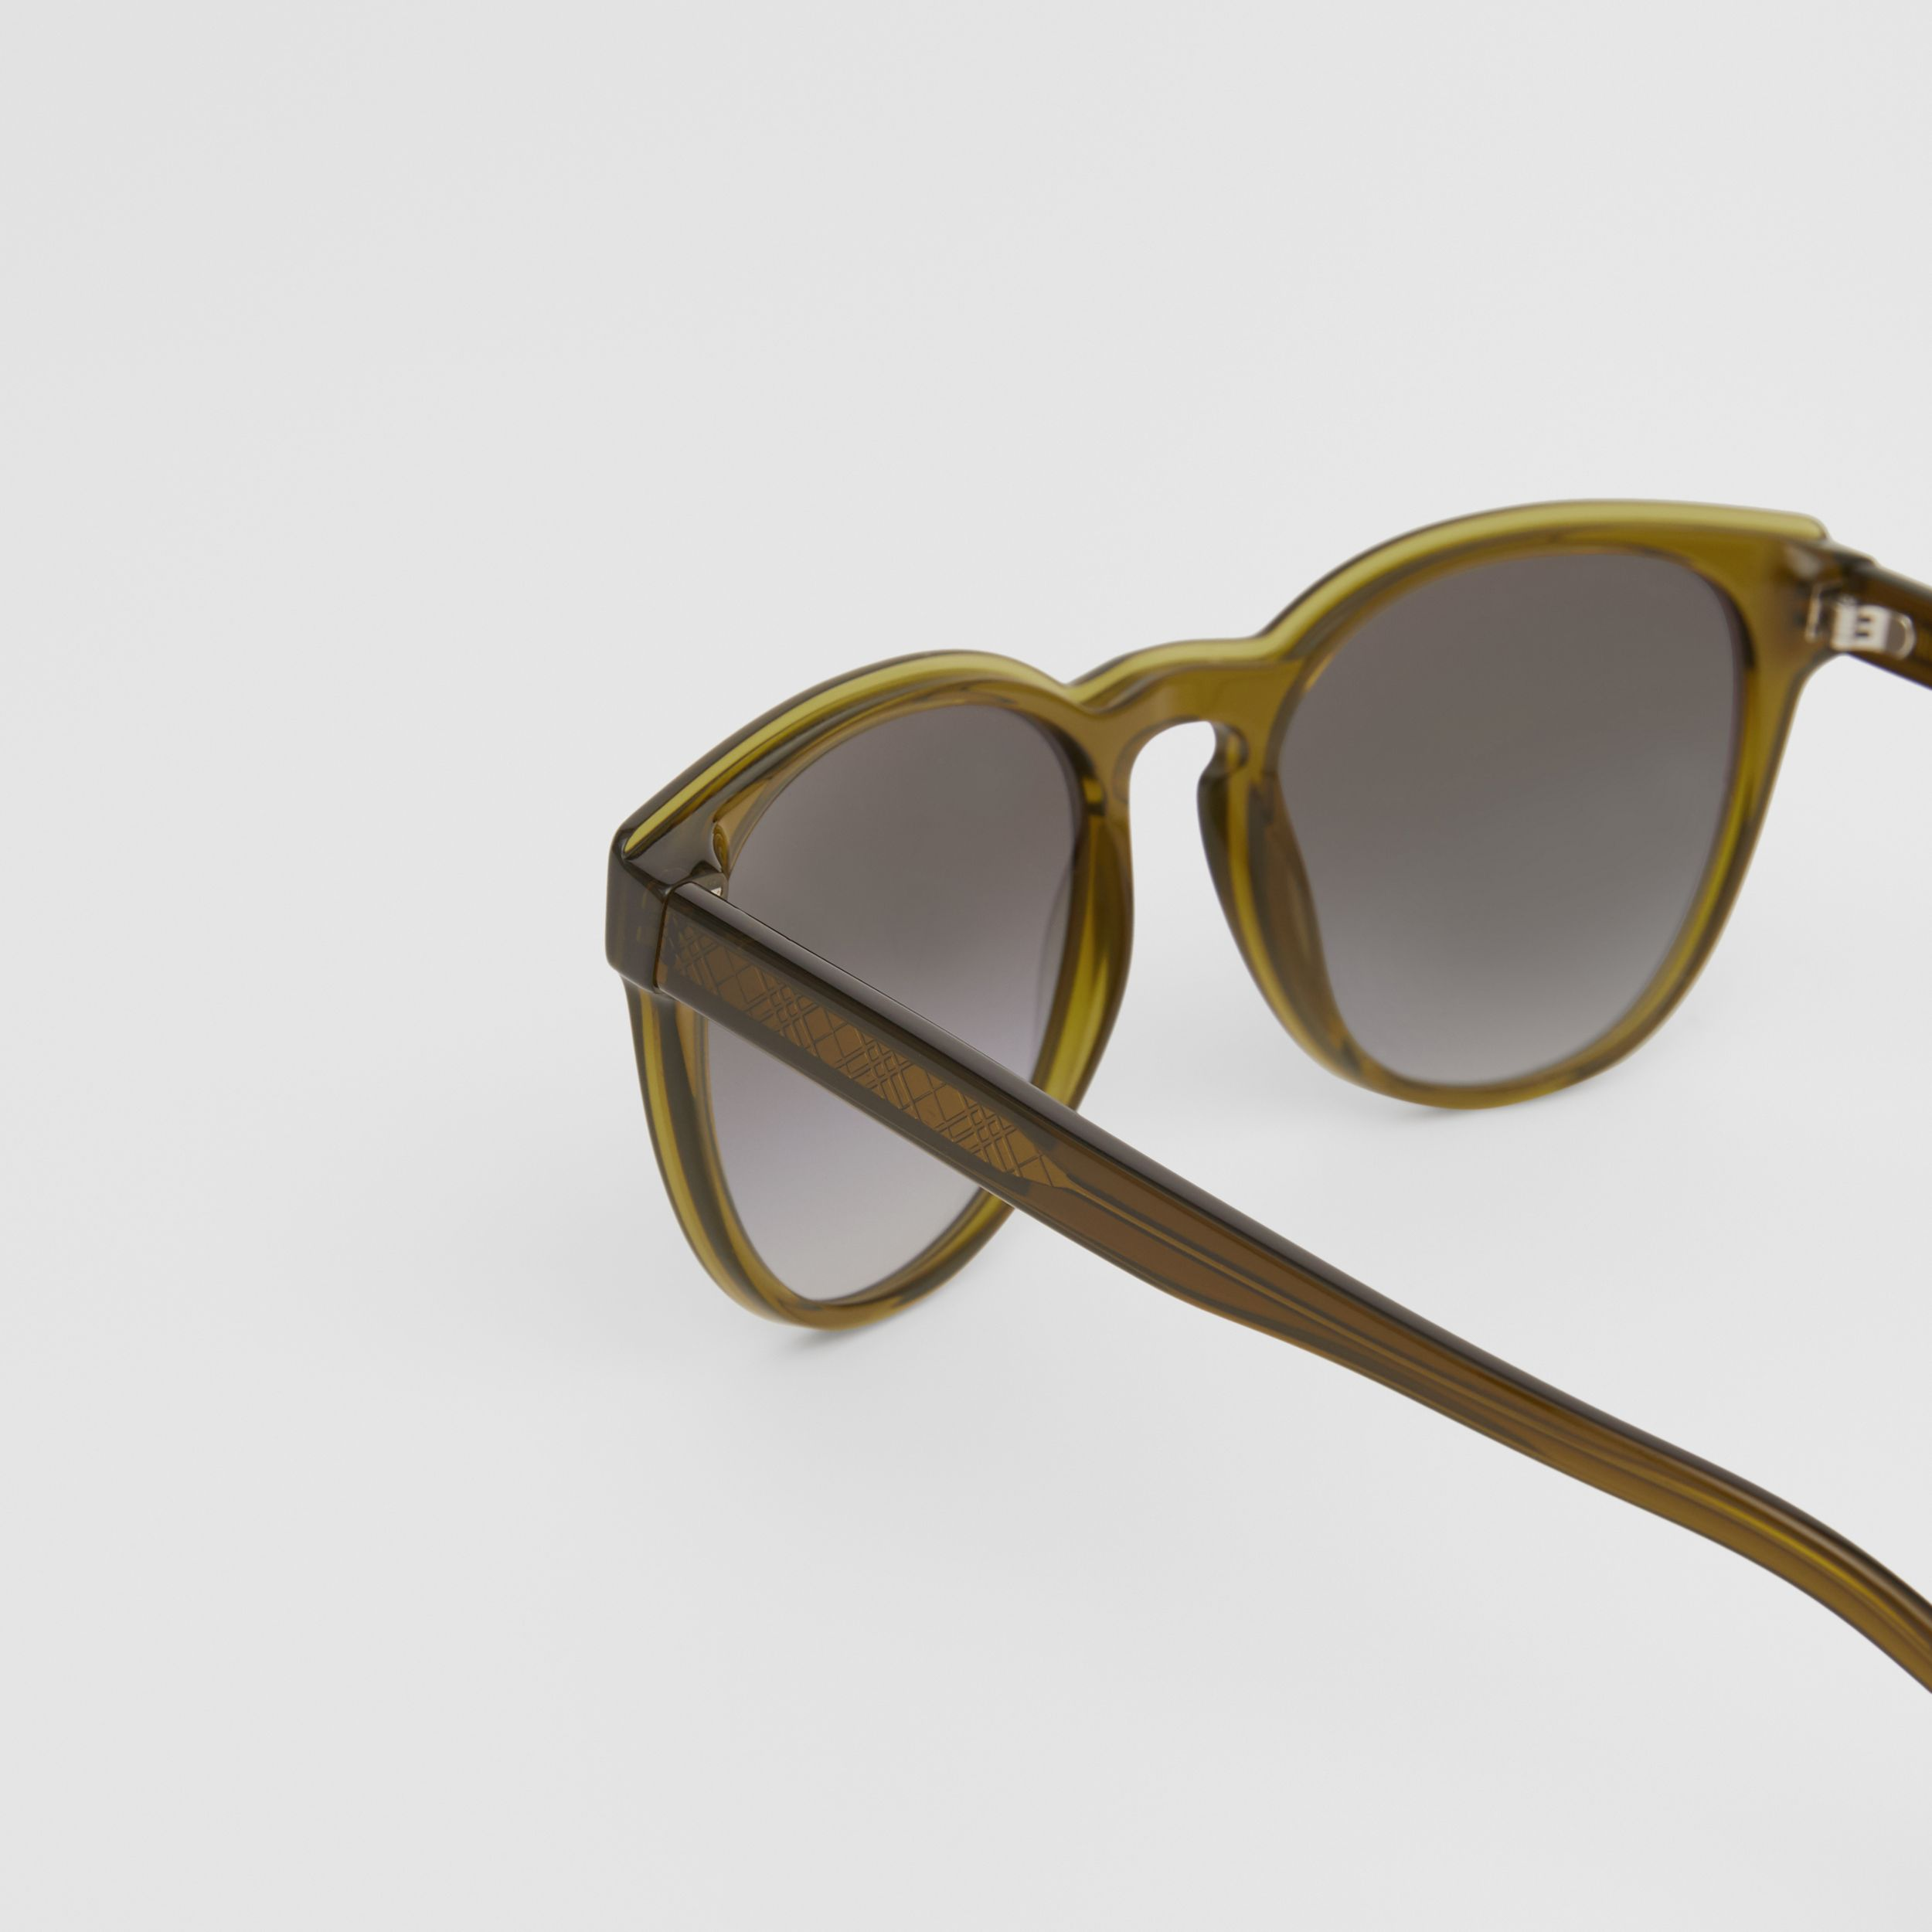 Round Frame Sunglasses in Olive - Men | Burberry - 2